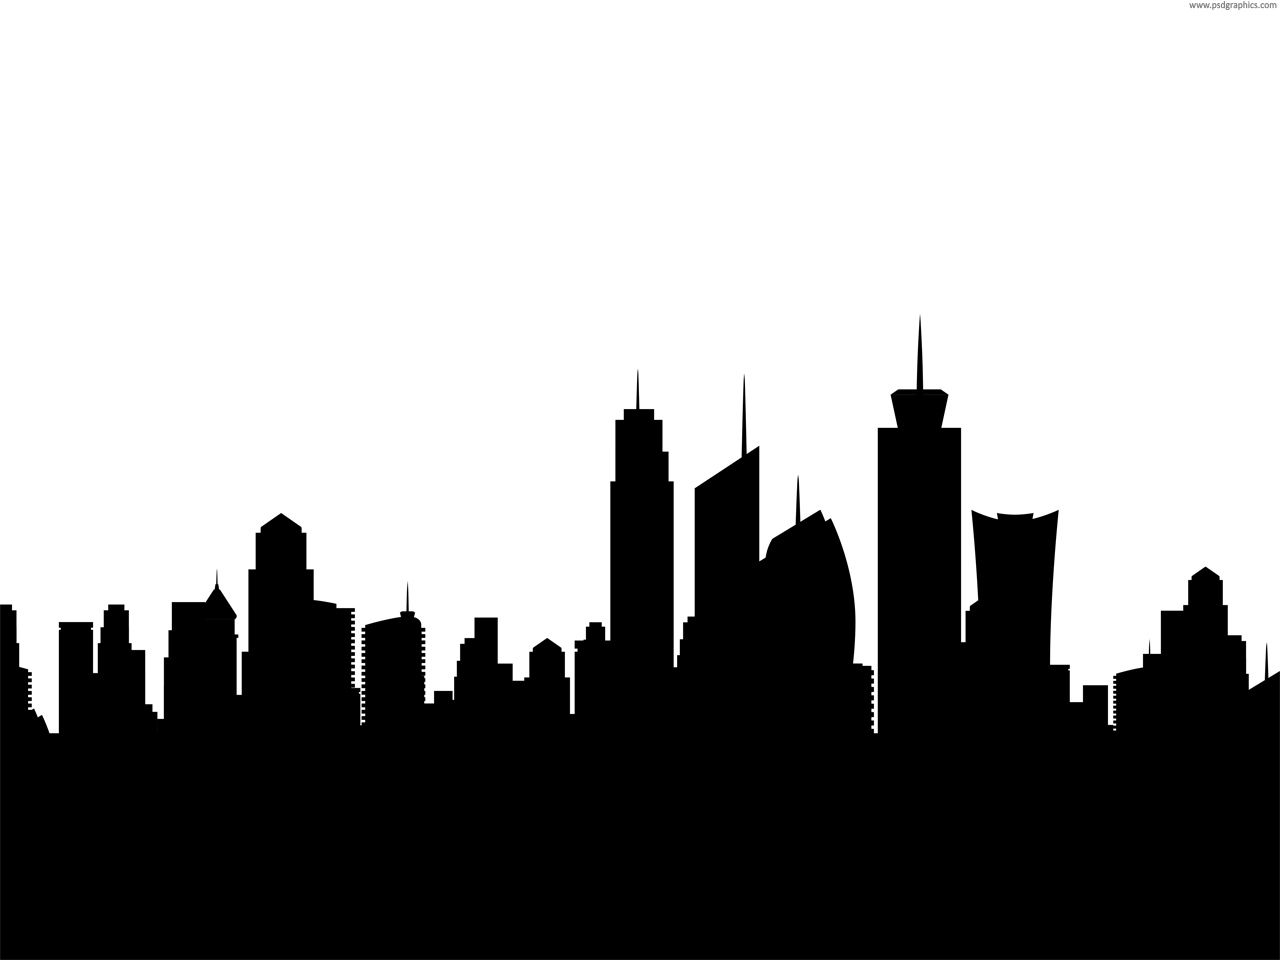 city skyline silhouette clip art at getdrawings com free for rh getdrawings com city skyline clipart free city skyline clipart black and white